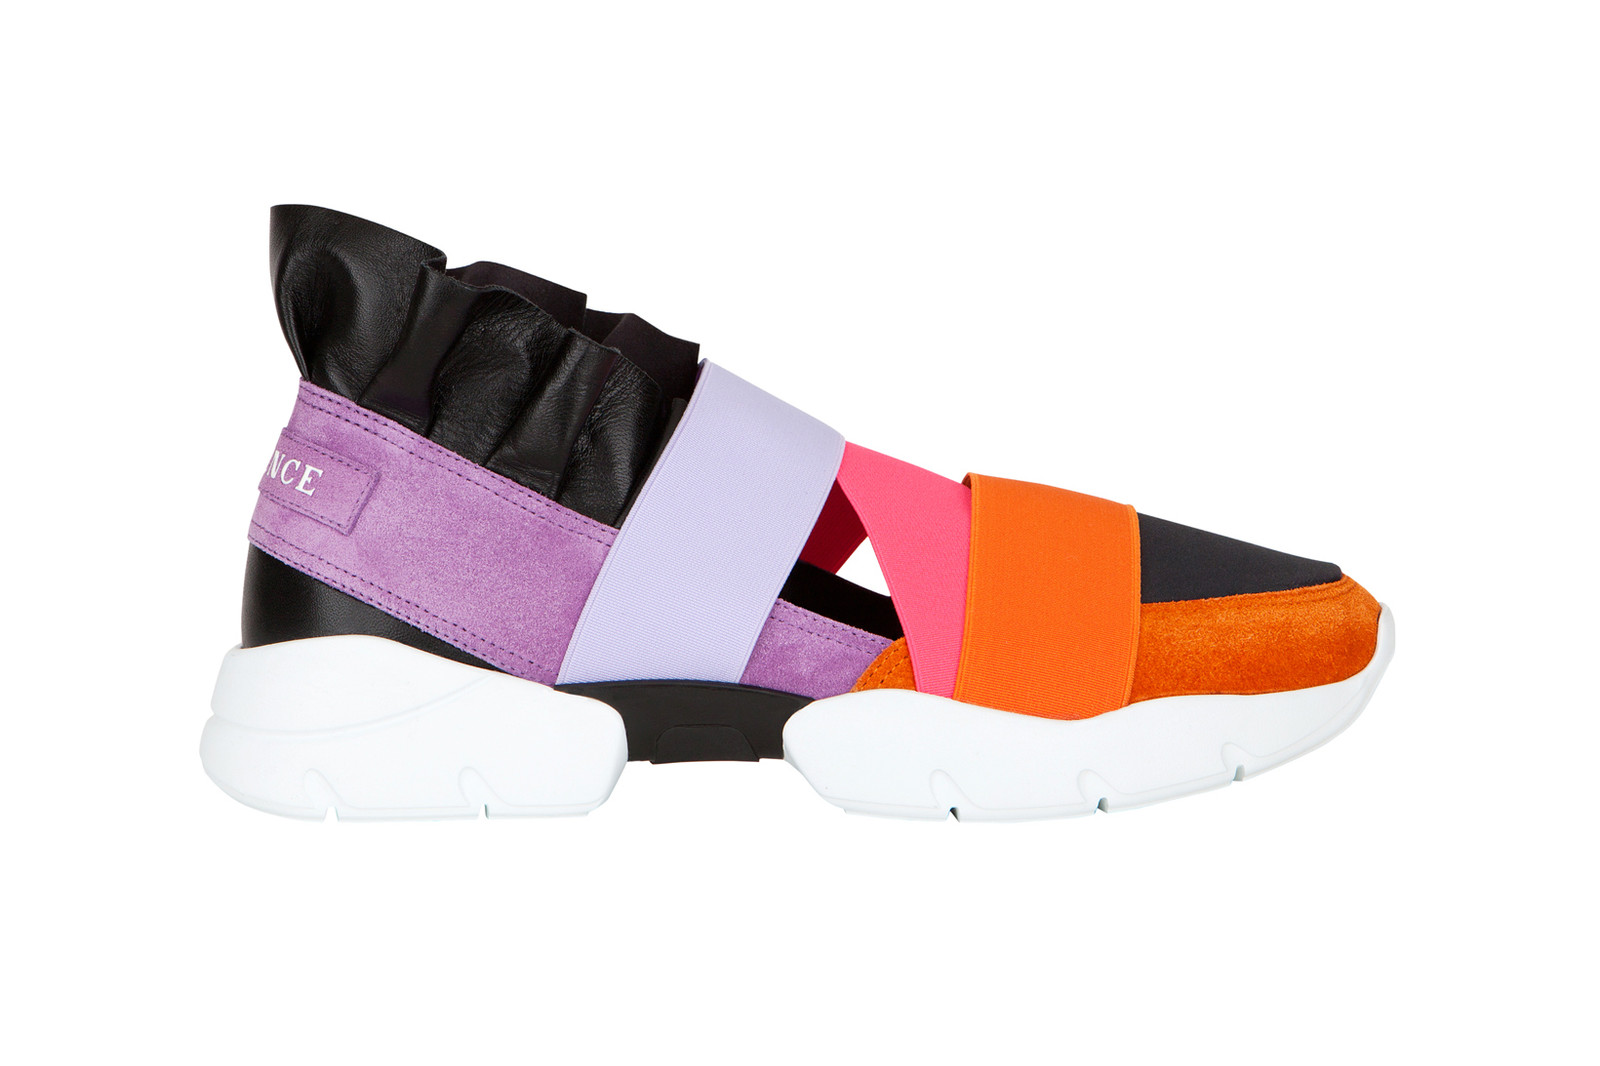 Emilio Pucci Sneakers of the World Collection